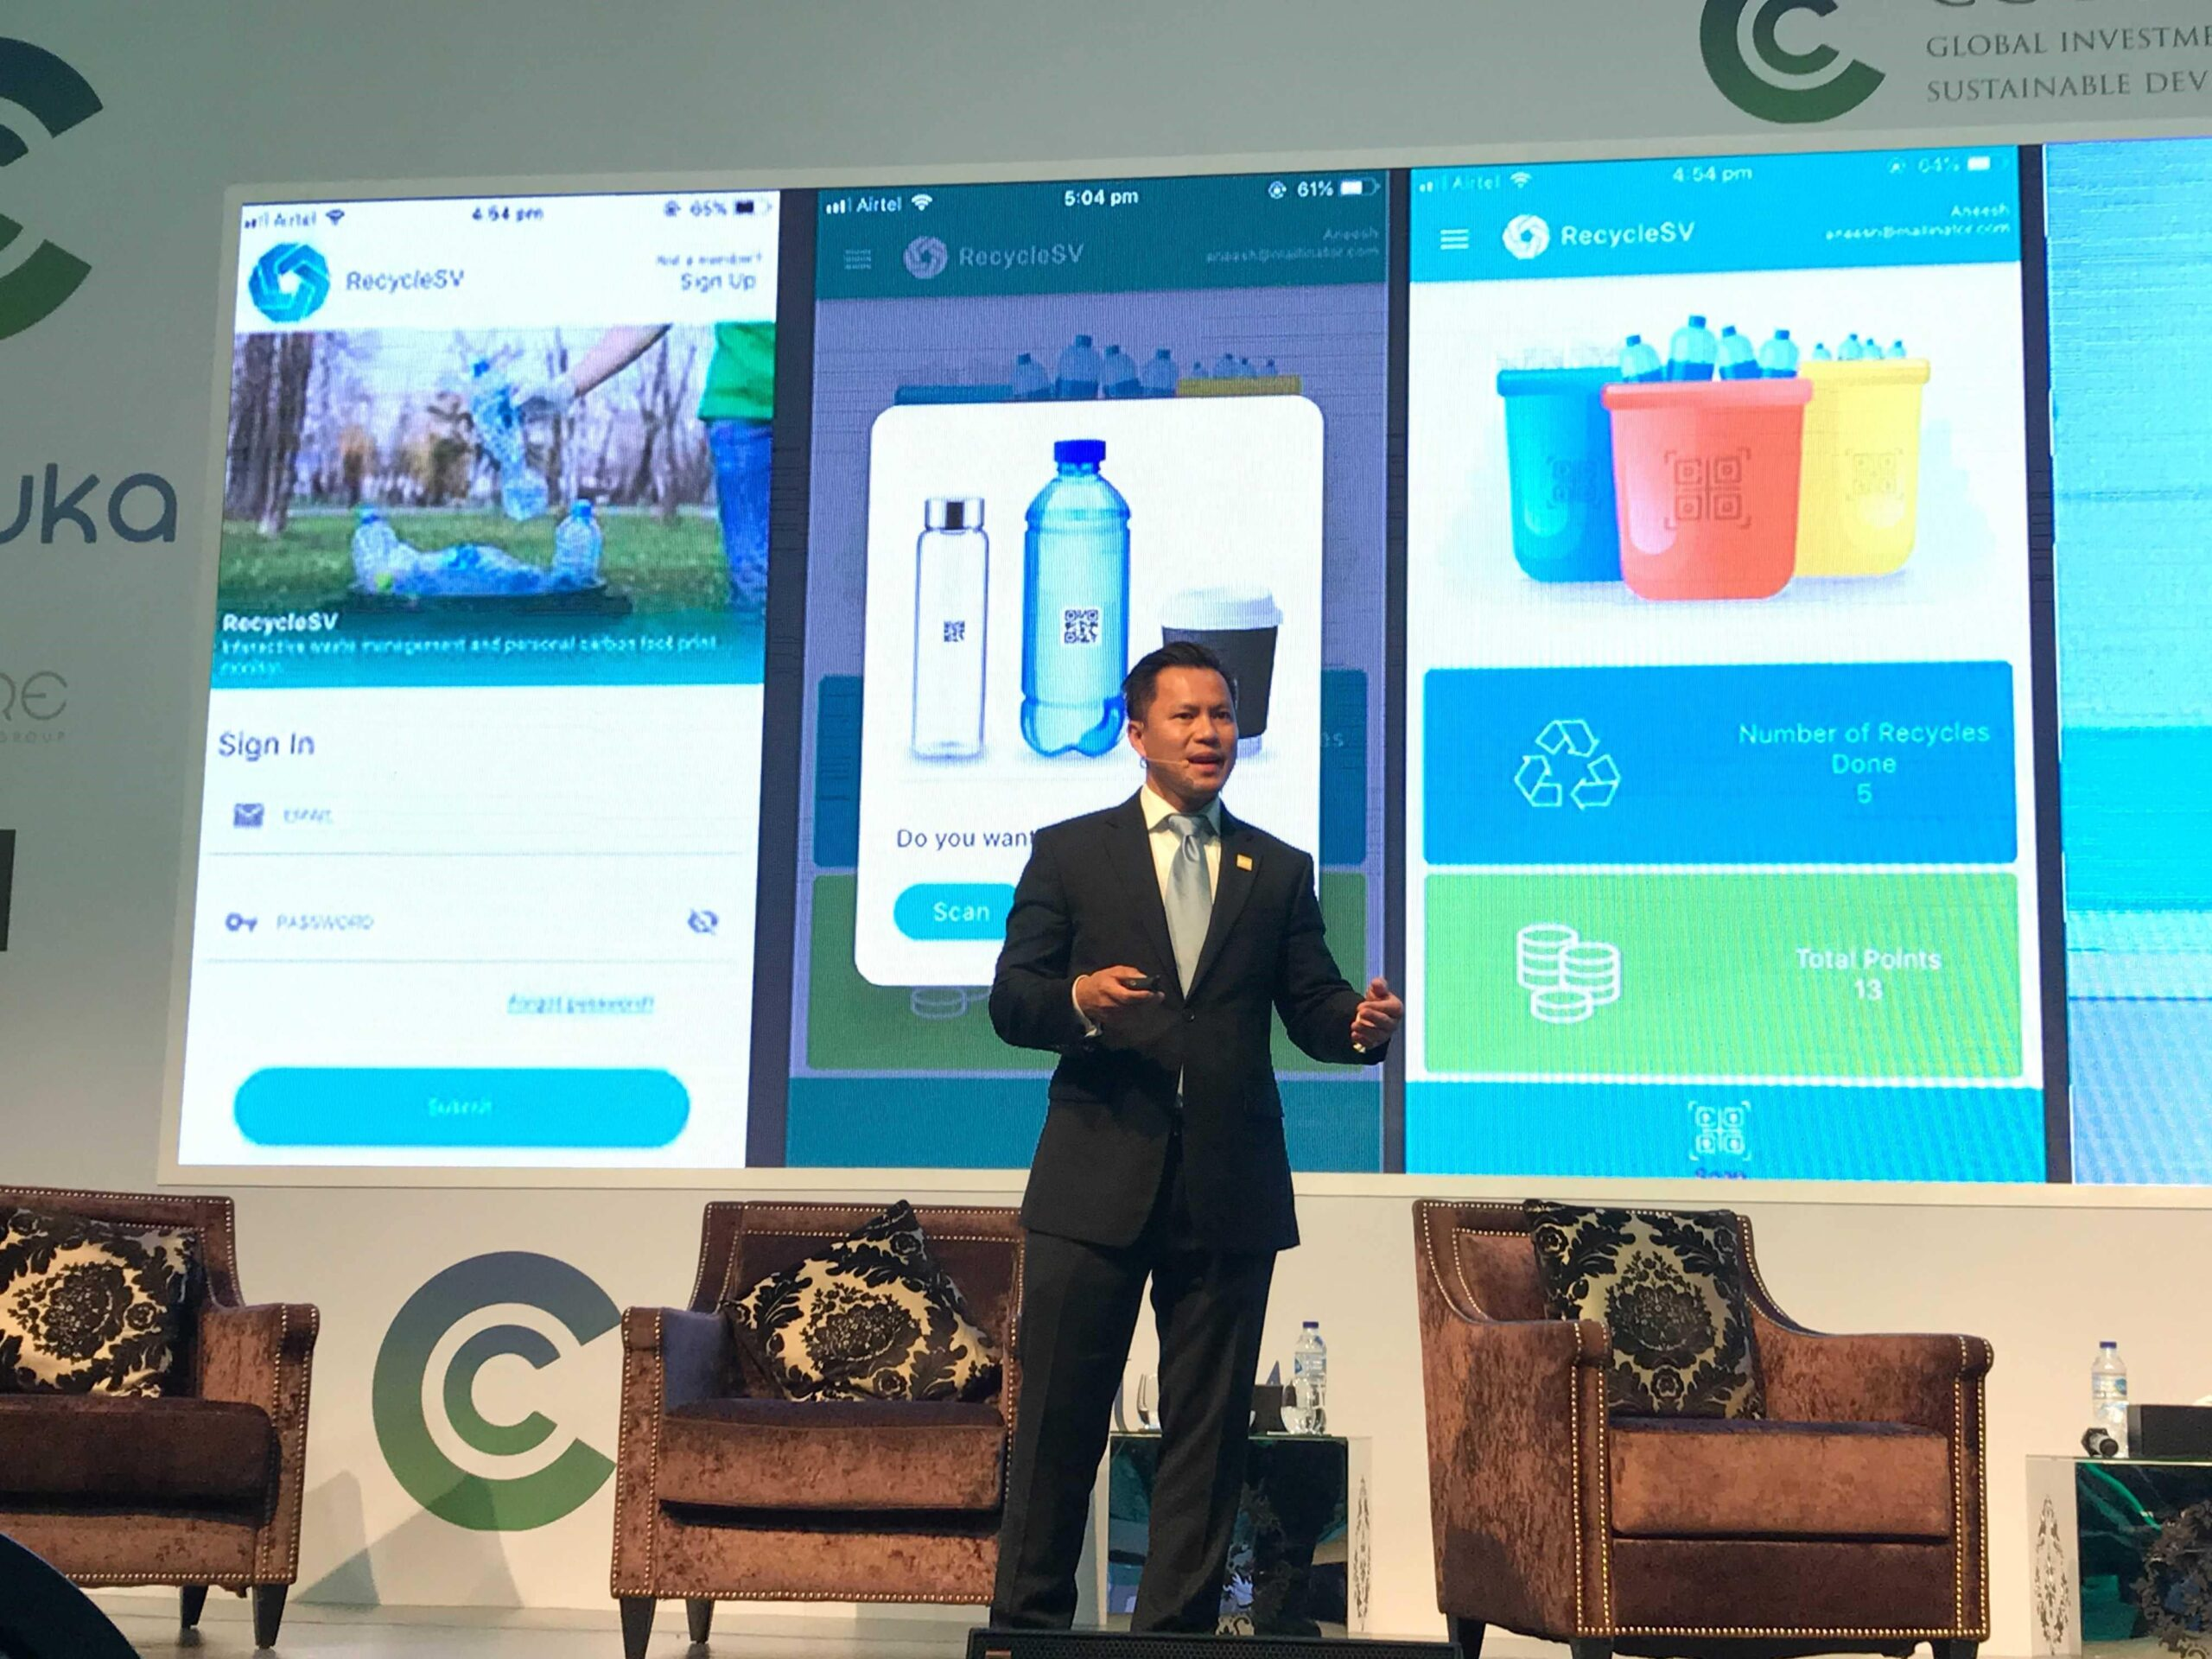 Jimmy Nguyen at the CC Forum in Dubai